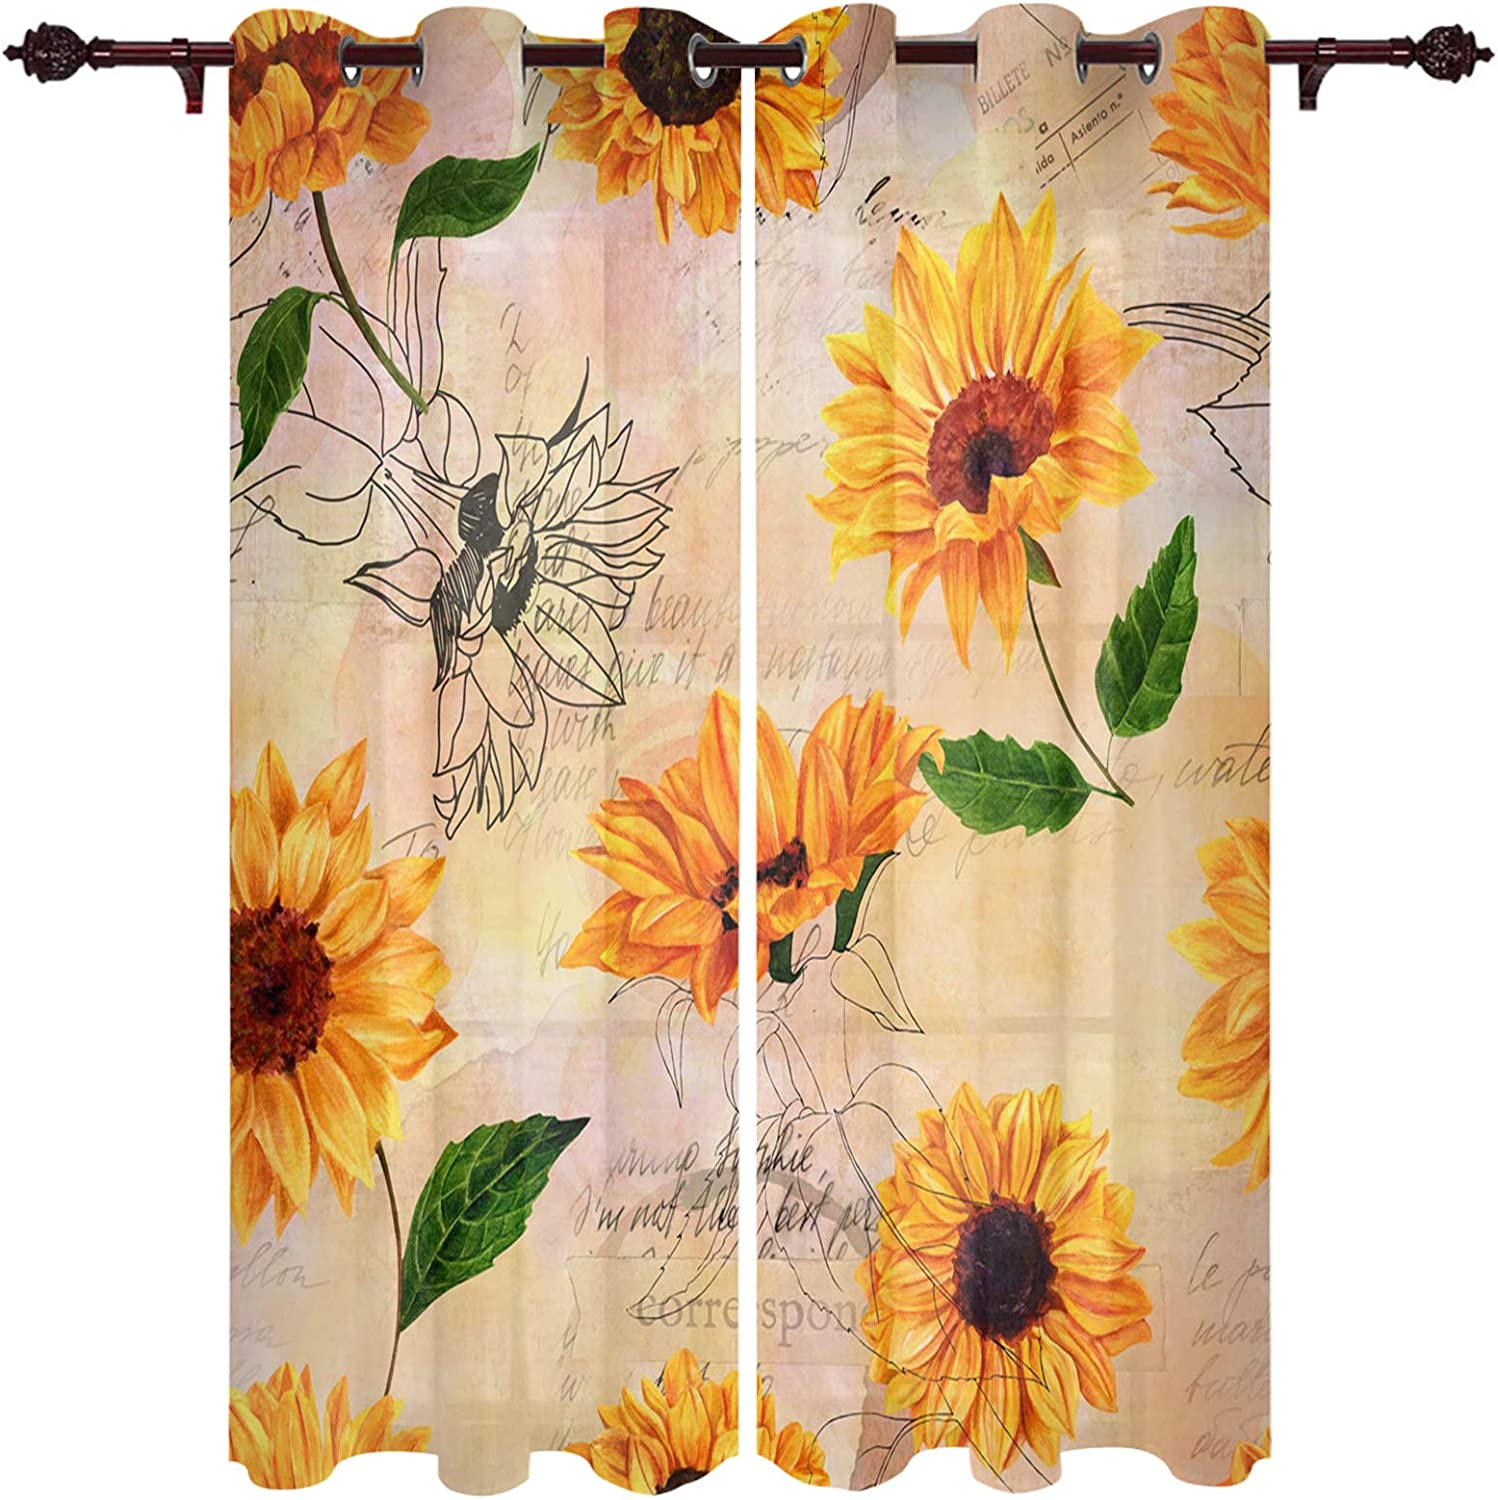 2 Panels New Orleans Mall Set Blackout Super Special SALE held Curtain Rustic Insulated Grommet S Thermal